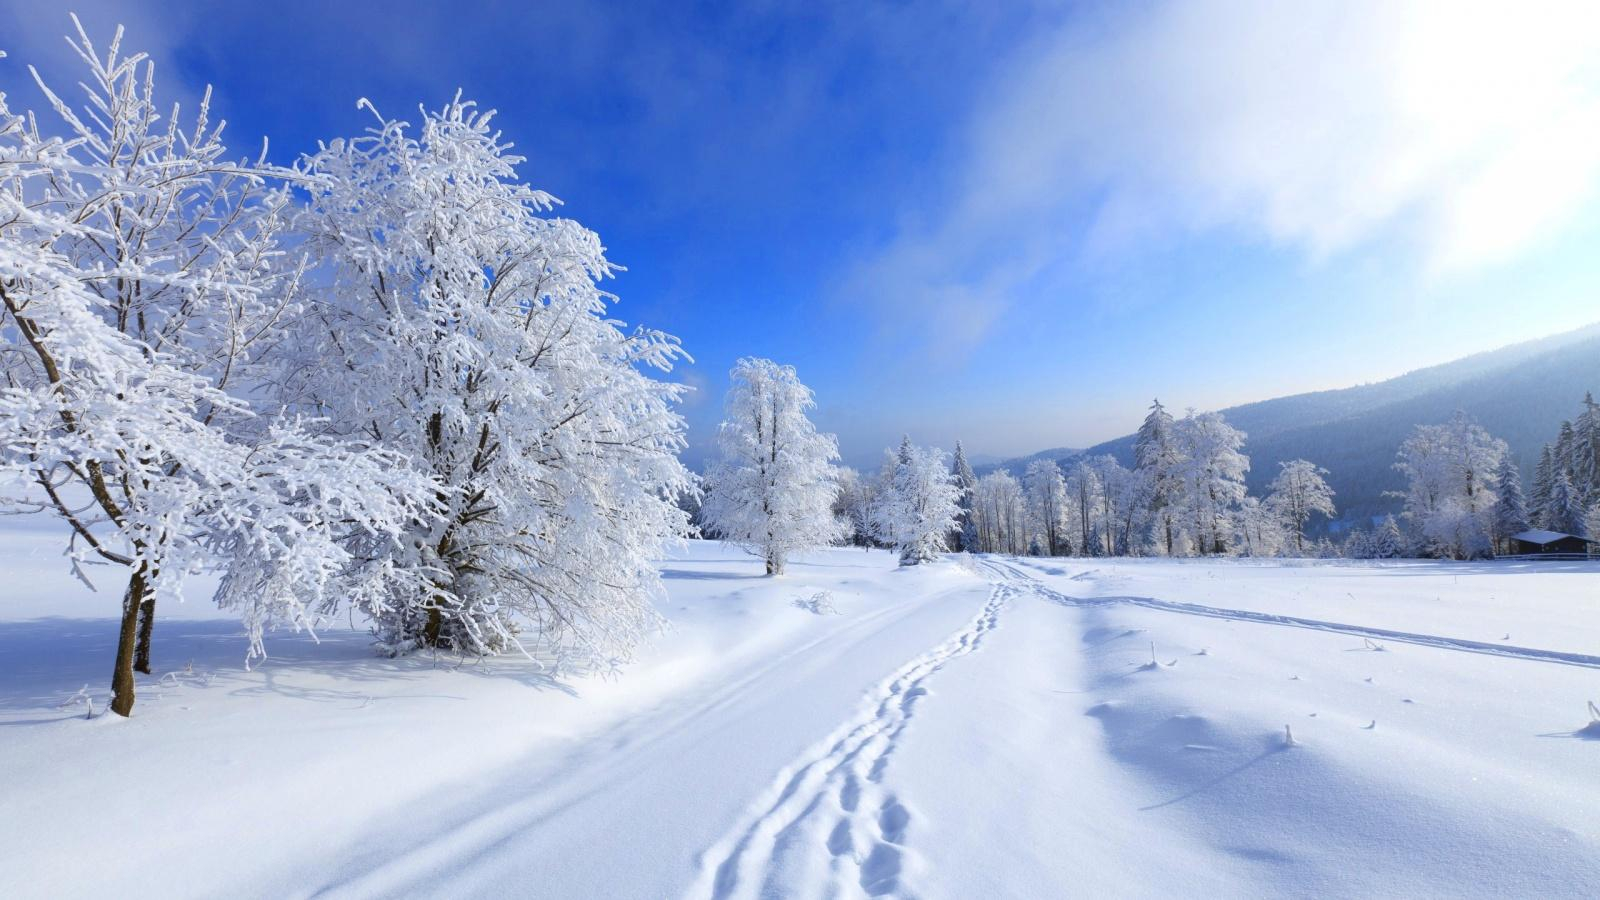 Winter Wallpapers Laptop, White Tree Winter Wallpaper,